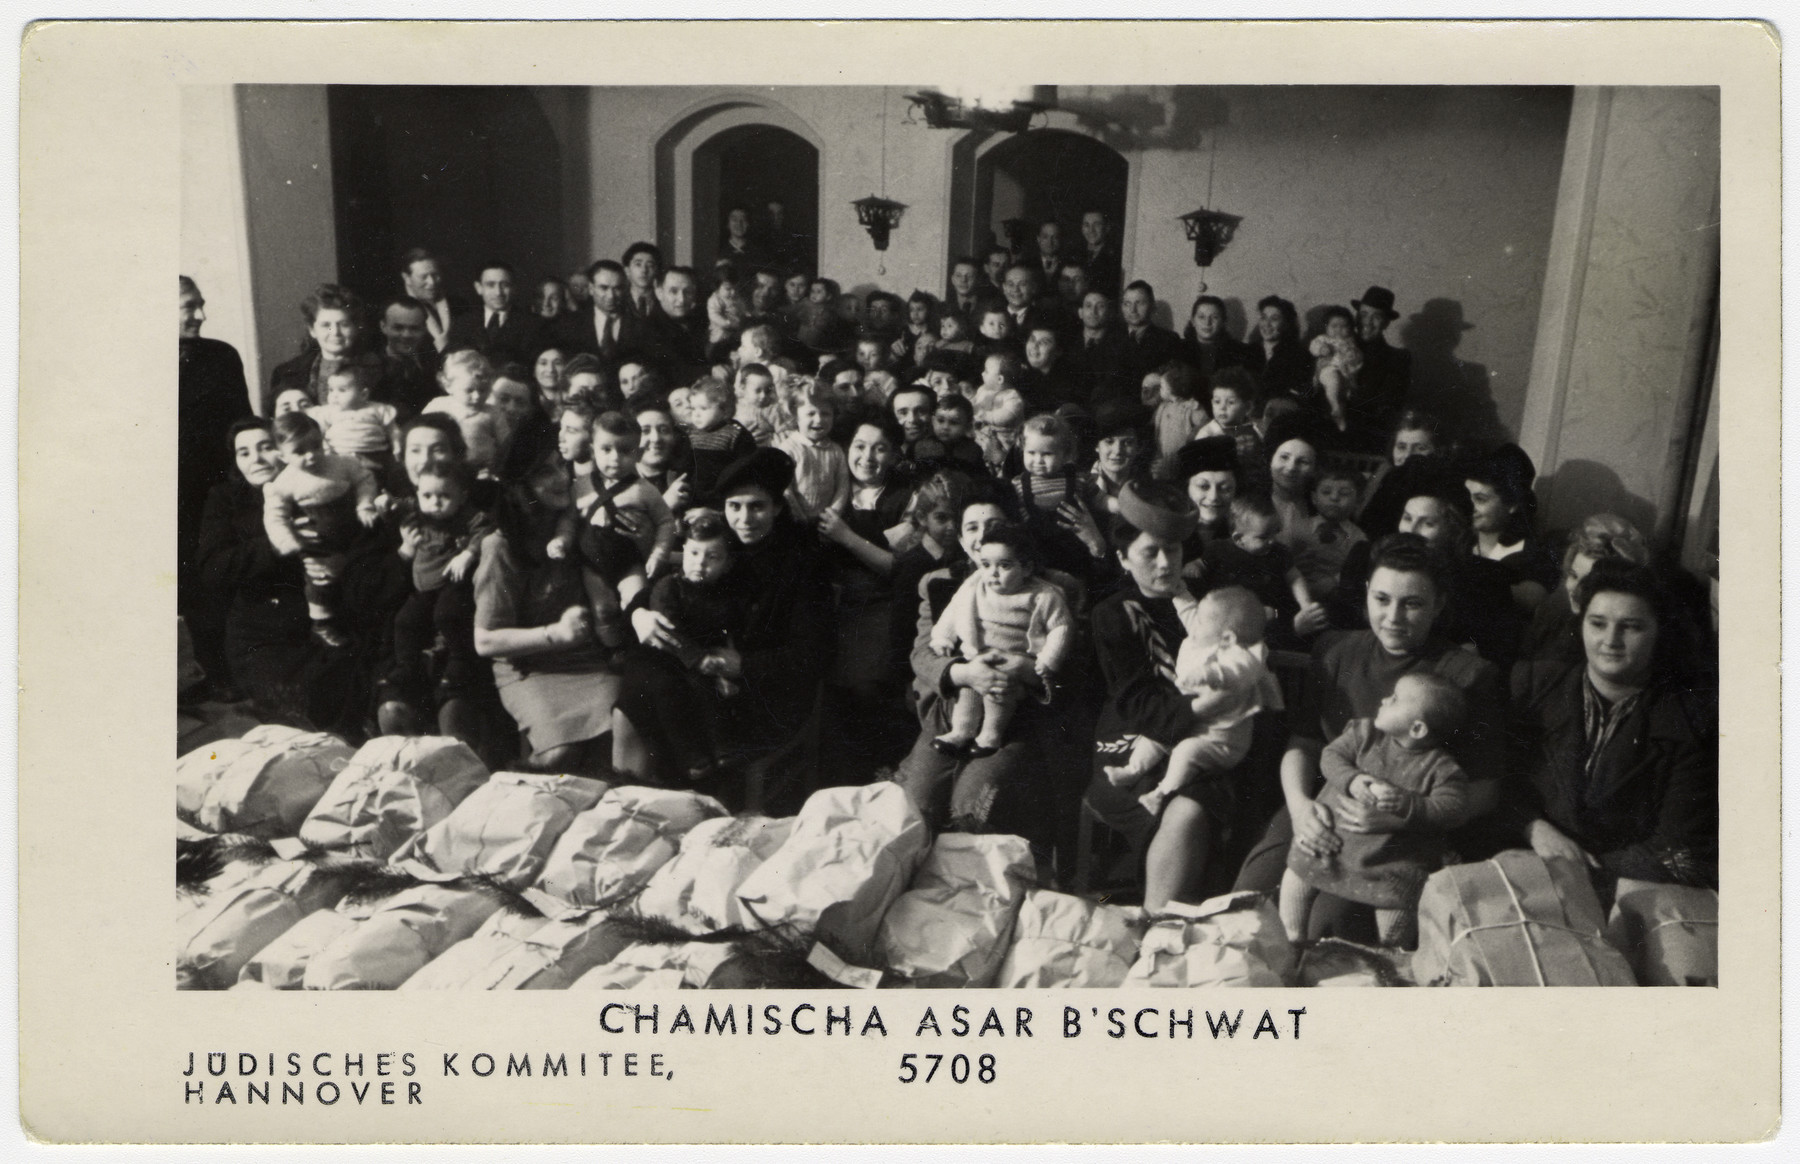 Jewish men, women and children celebrate Tu B'Shvat in the Hanover displaced persons camp.